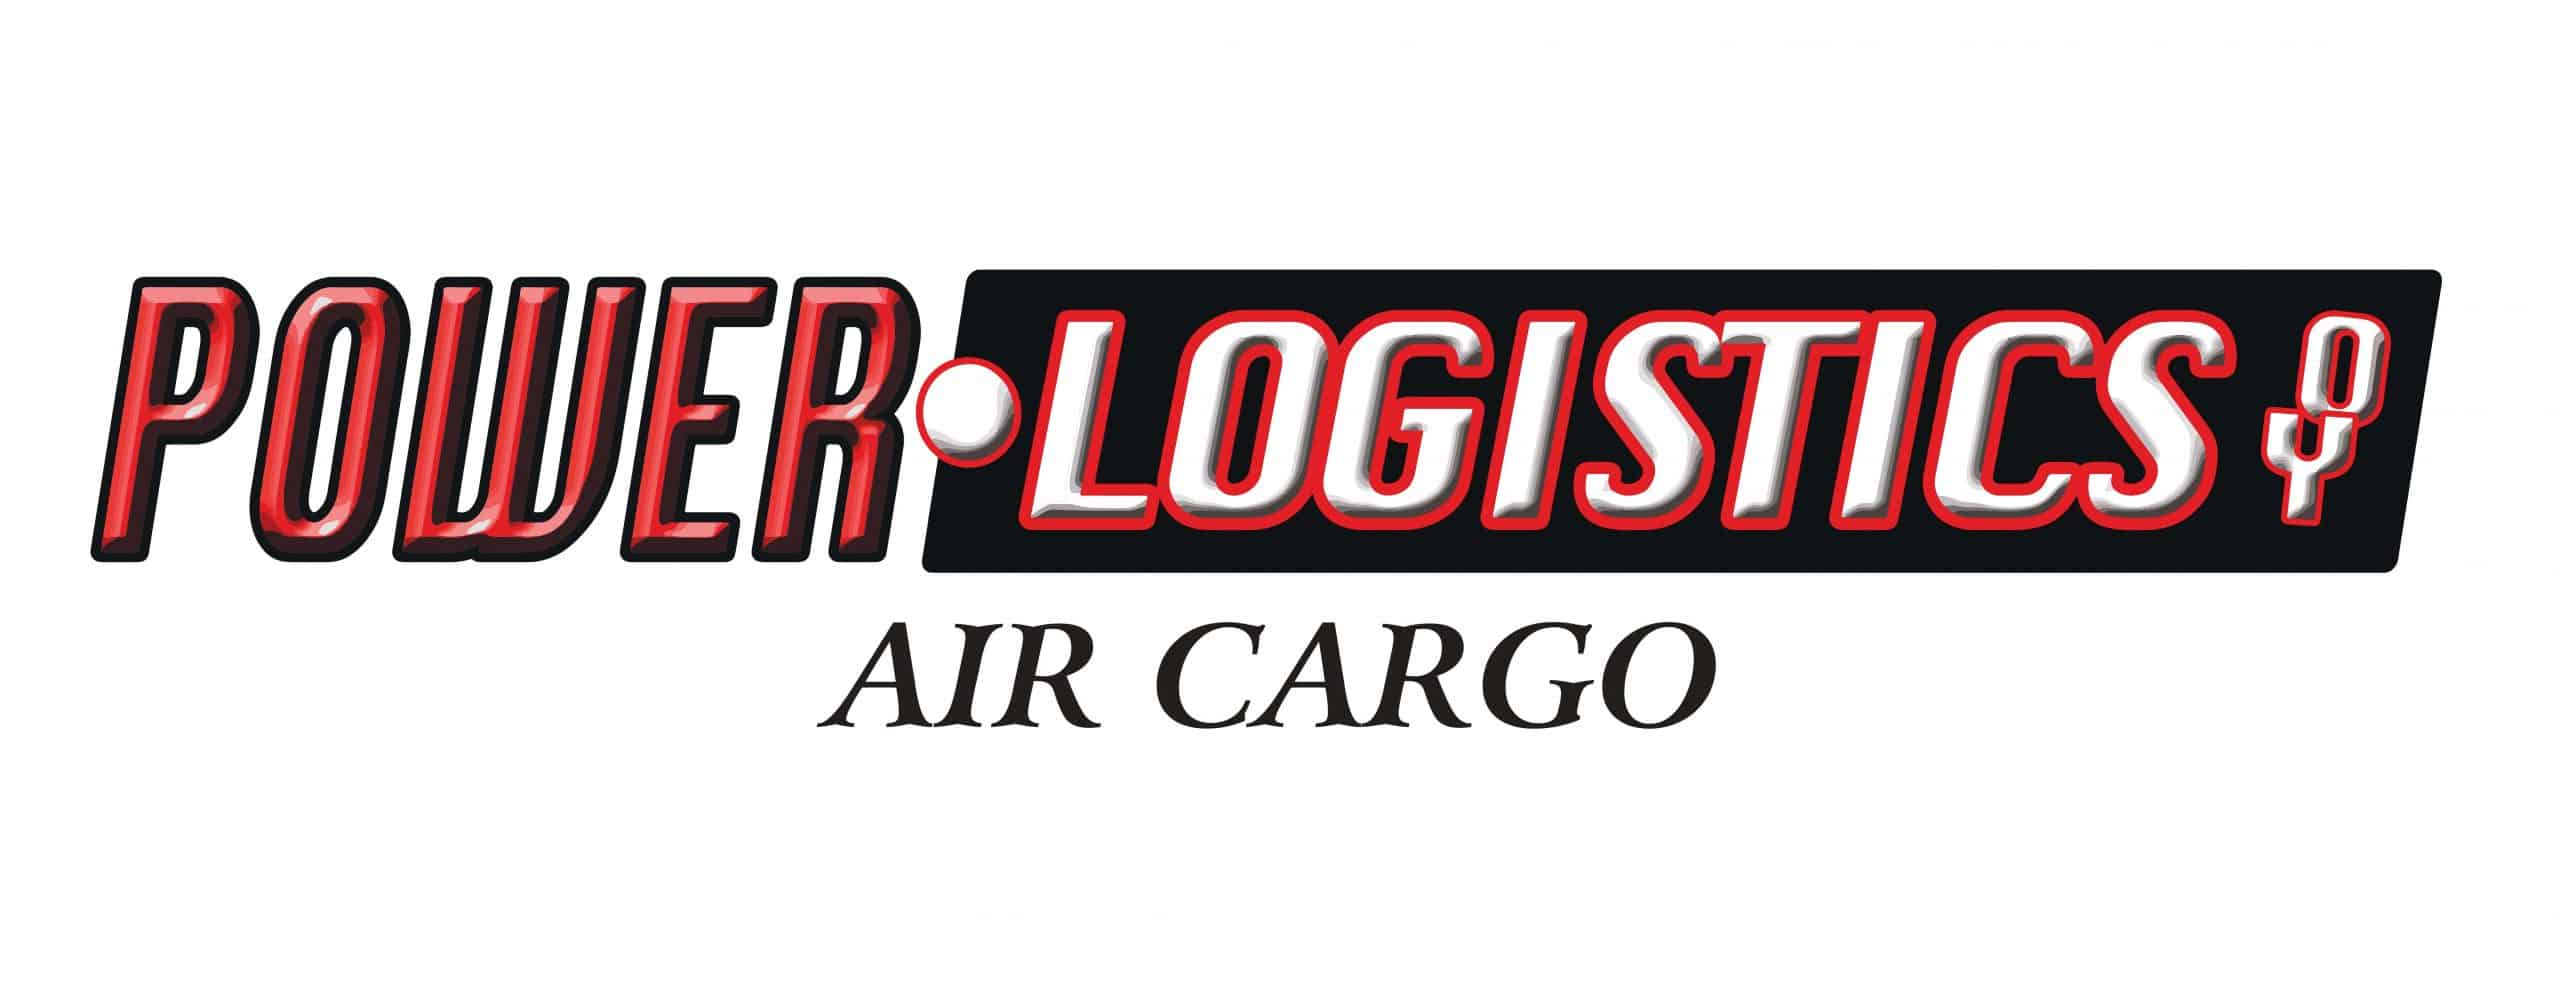 Powerlogistics_logo